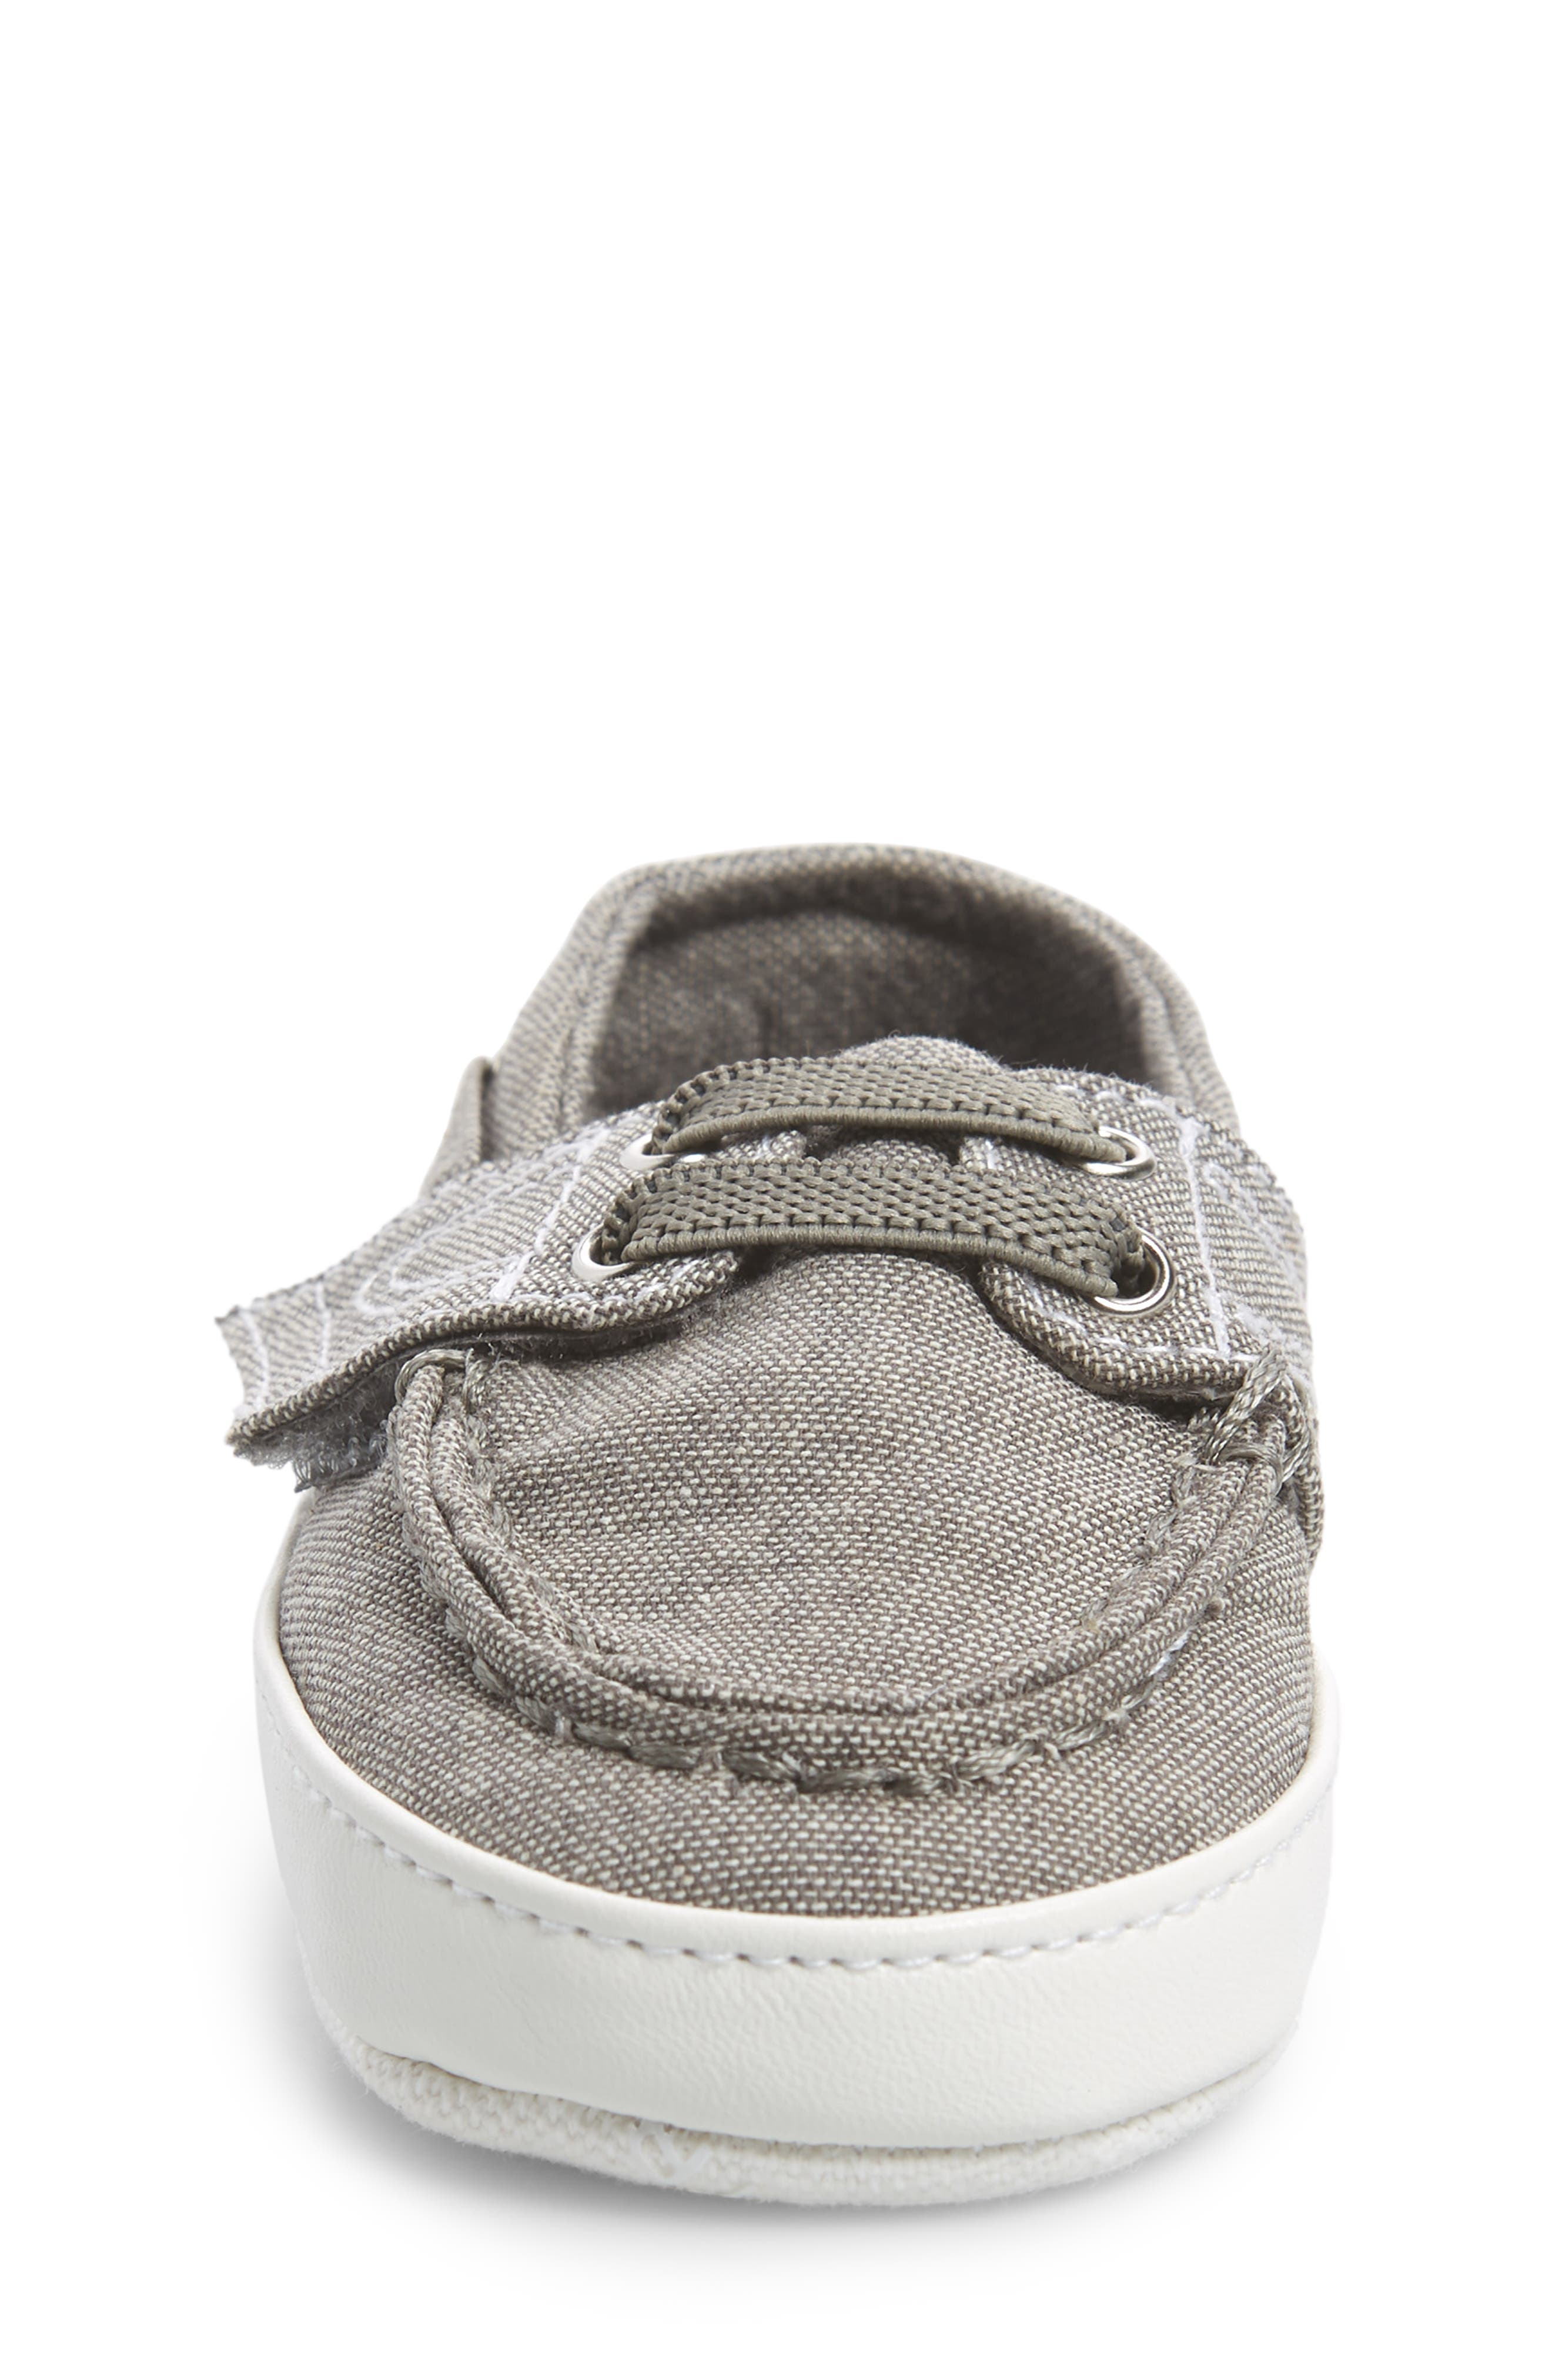 Motto Boat Crib Shoe,                             Alternate thumbnail 4, color,